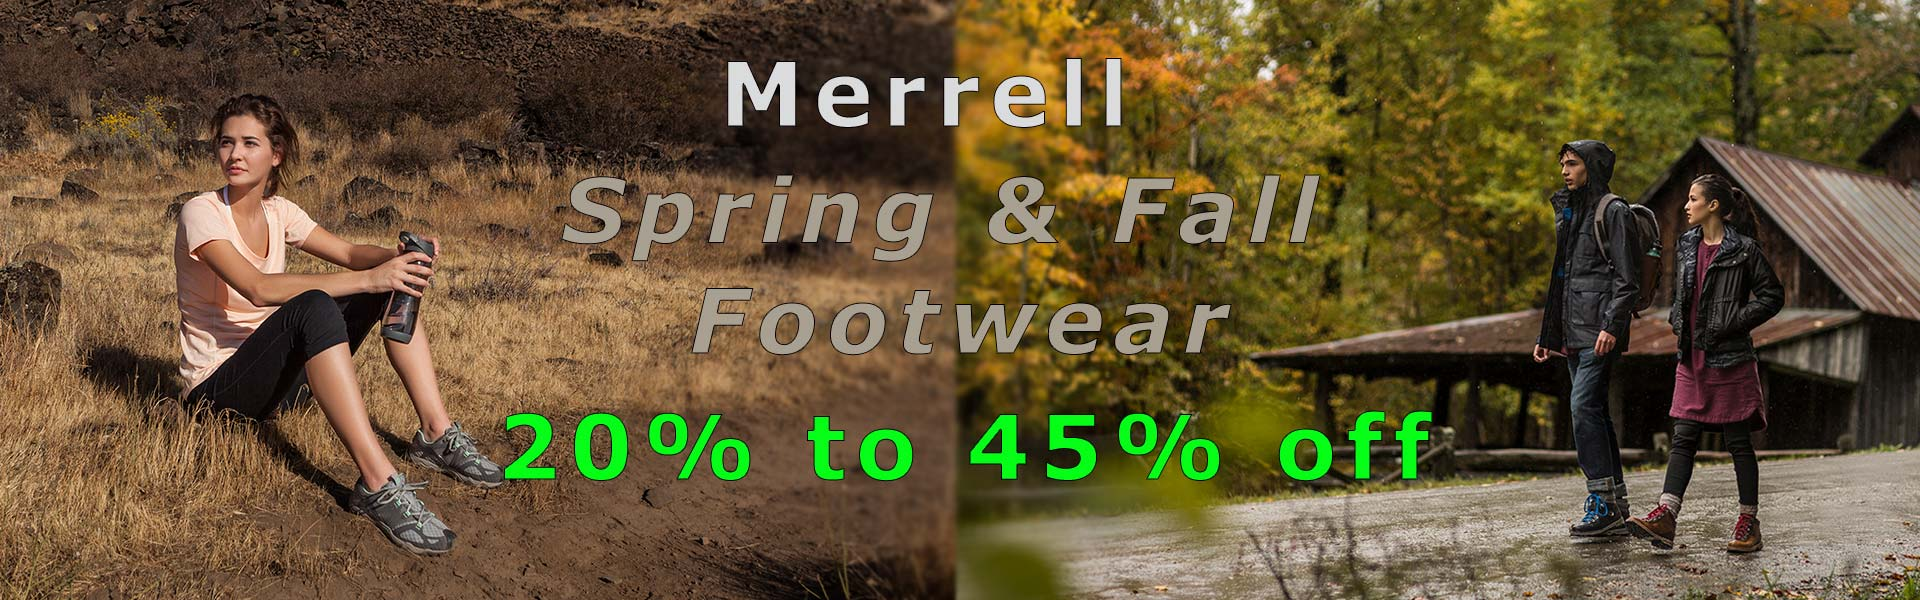 Merrell Footwear on Sale